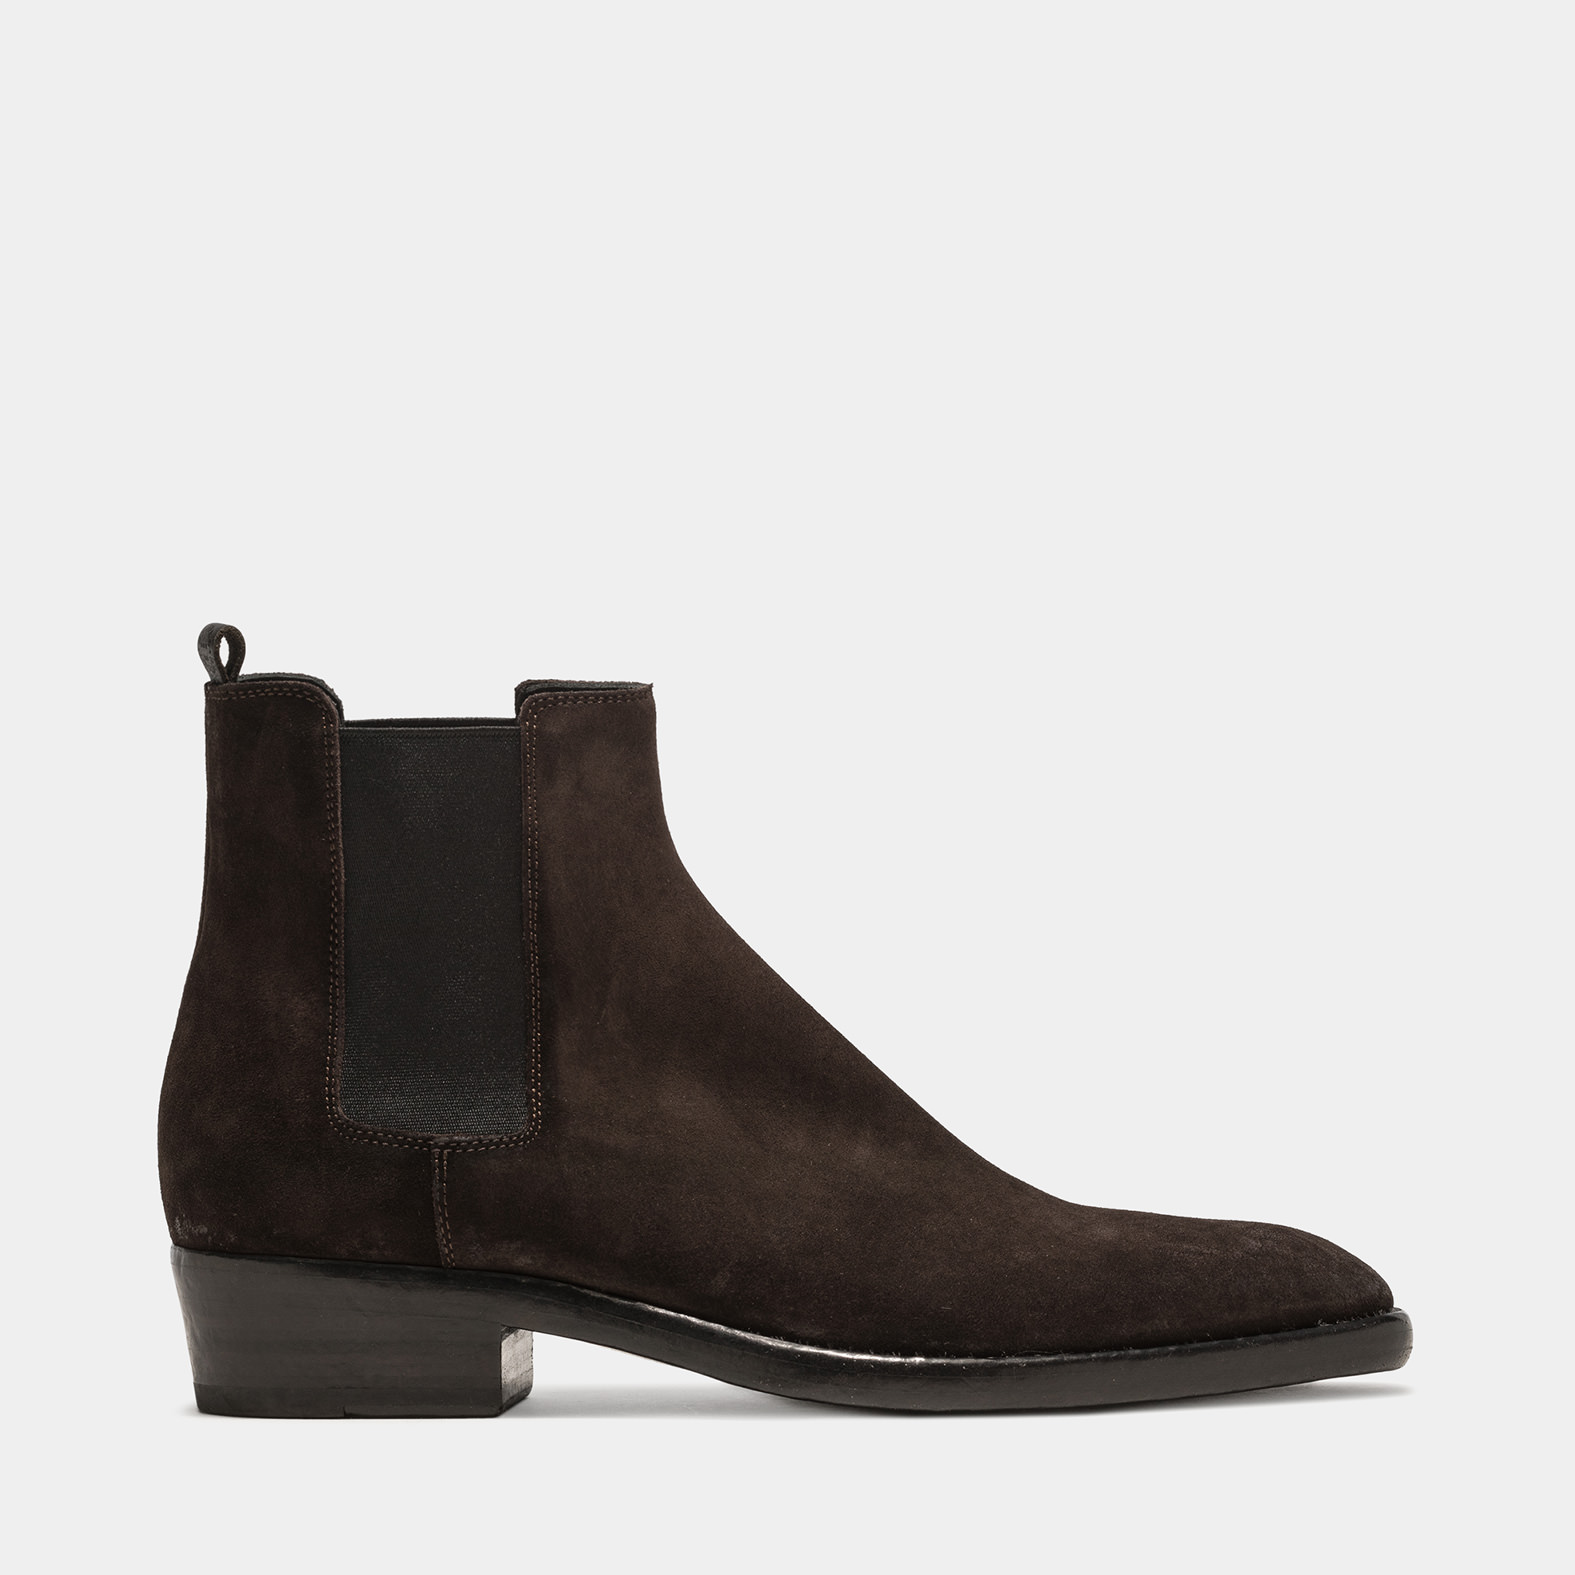 BUTTERO: QUENTIN ANKLE BOOTS IN PEPPER BROWN SUEDE